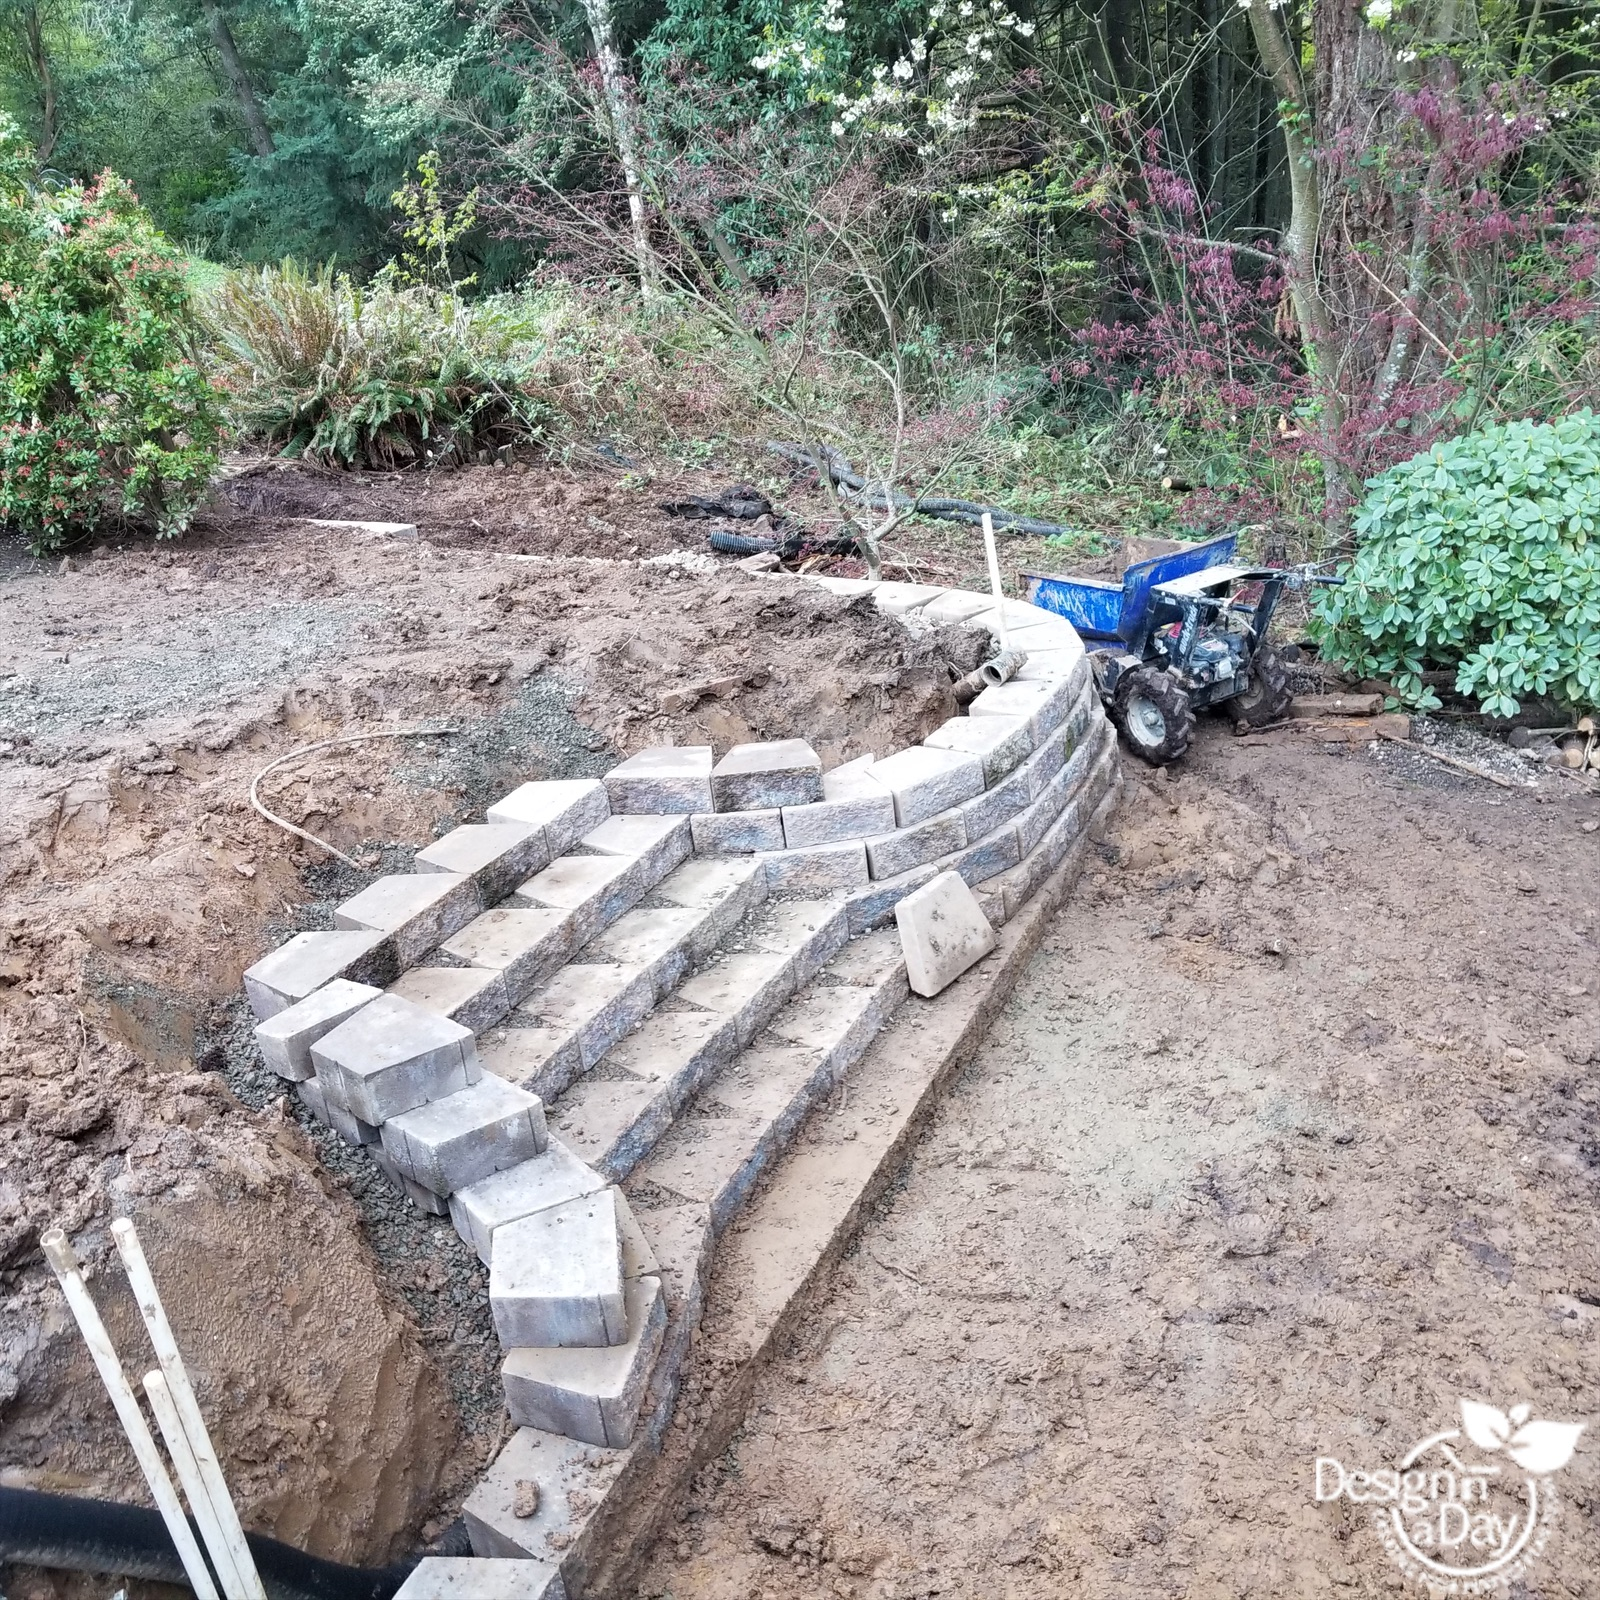 Hardscape is part of the garden design in this Portland backyard.